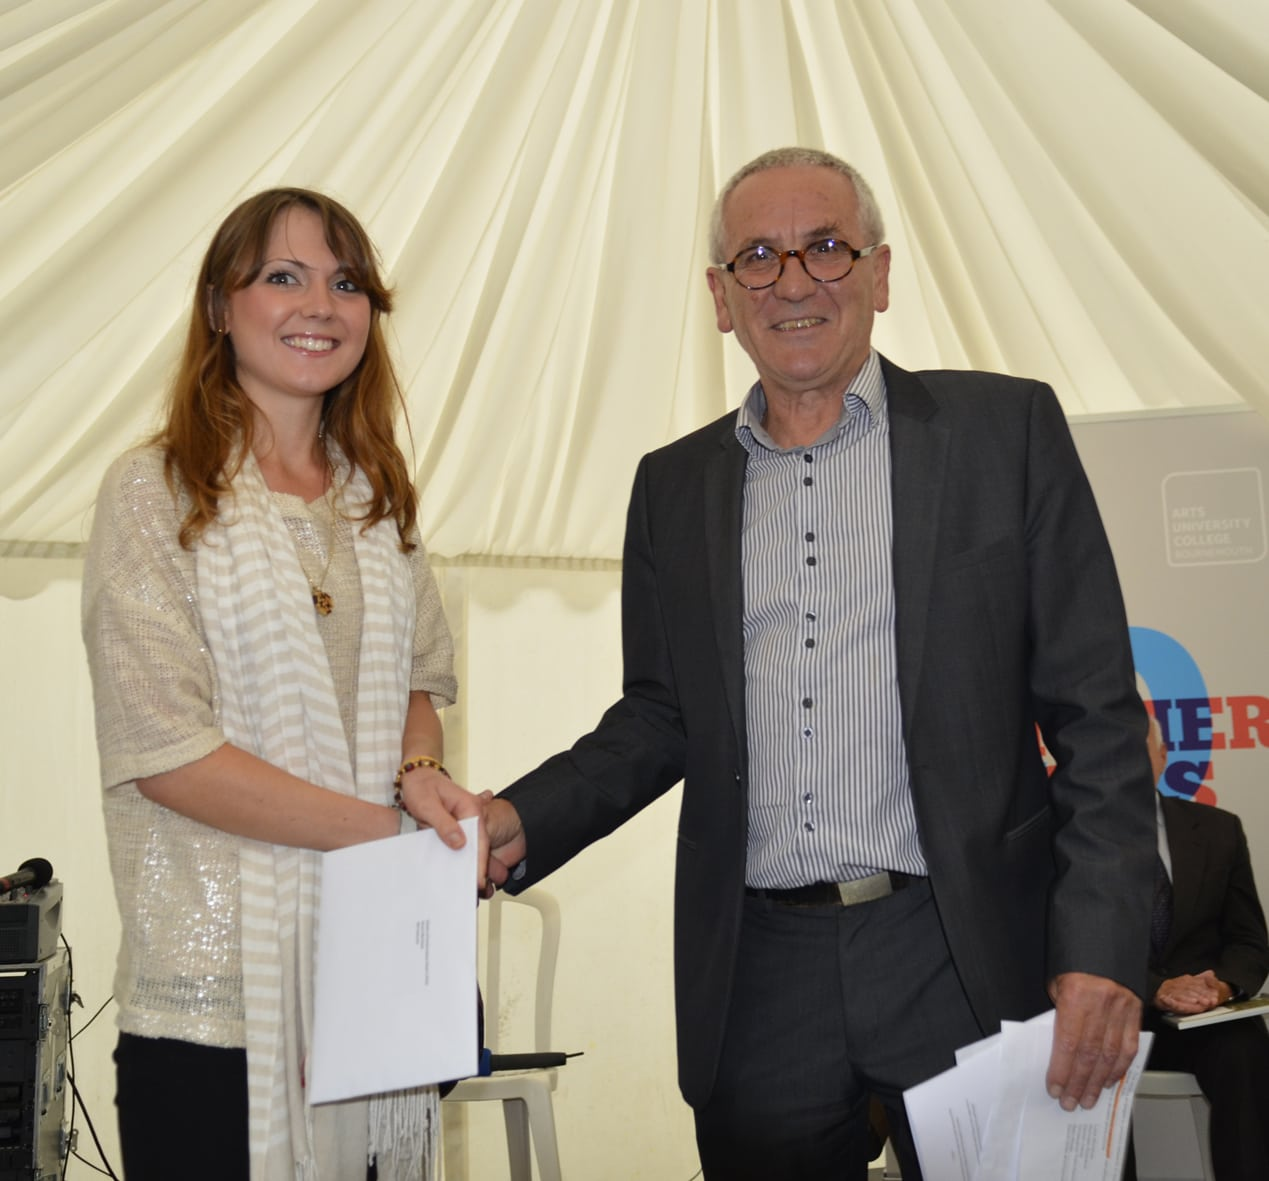 Students celebrated at annual summer shows presentation